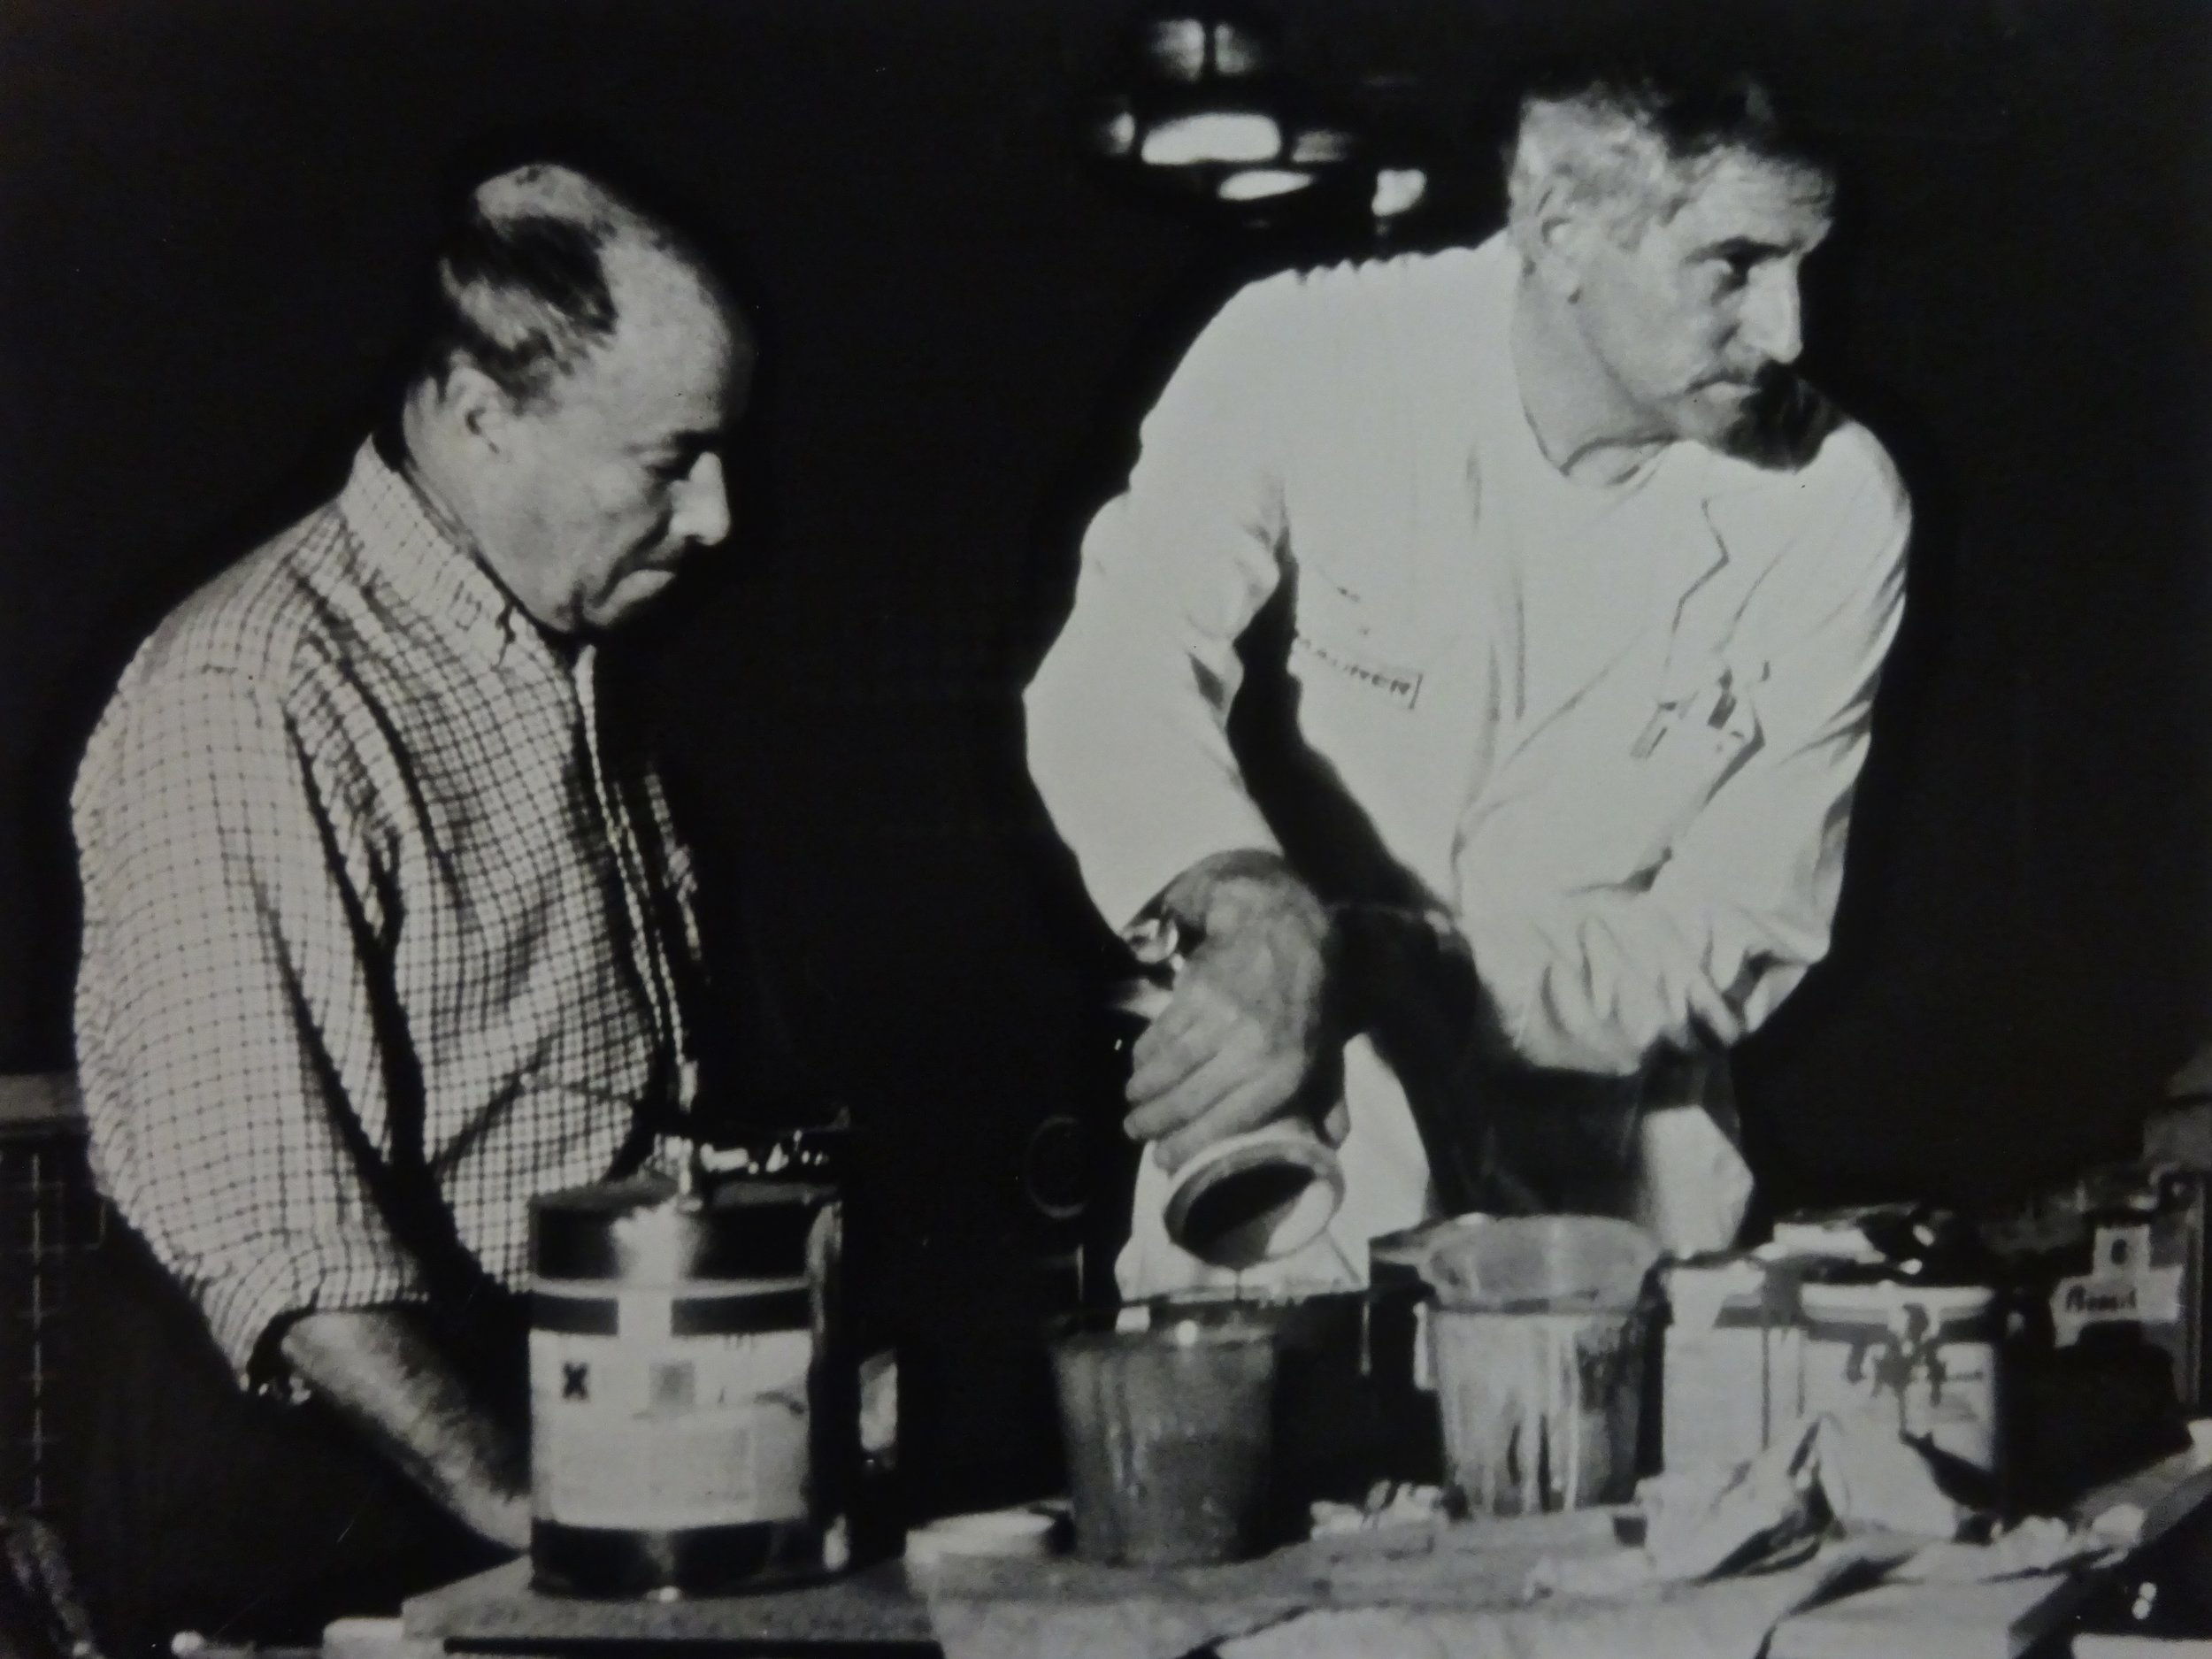 César Manrique and Walter Maurer